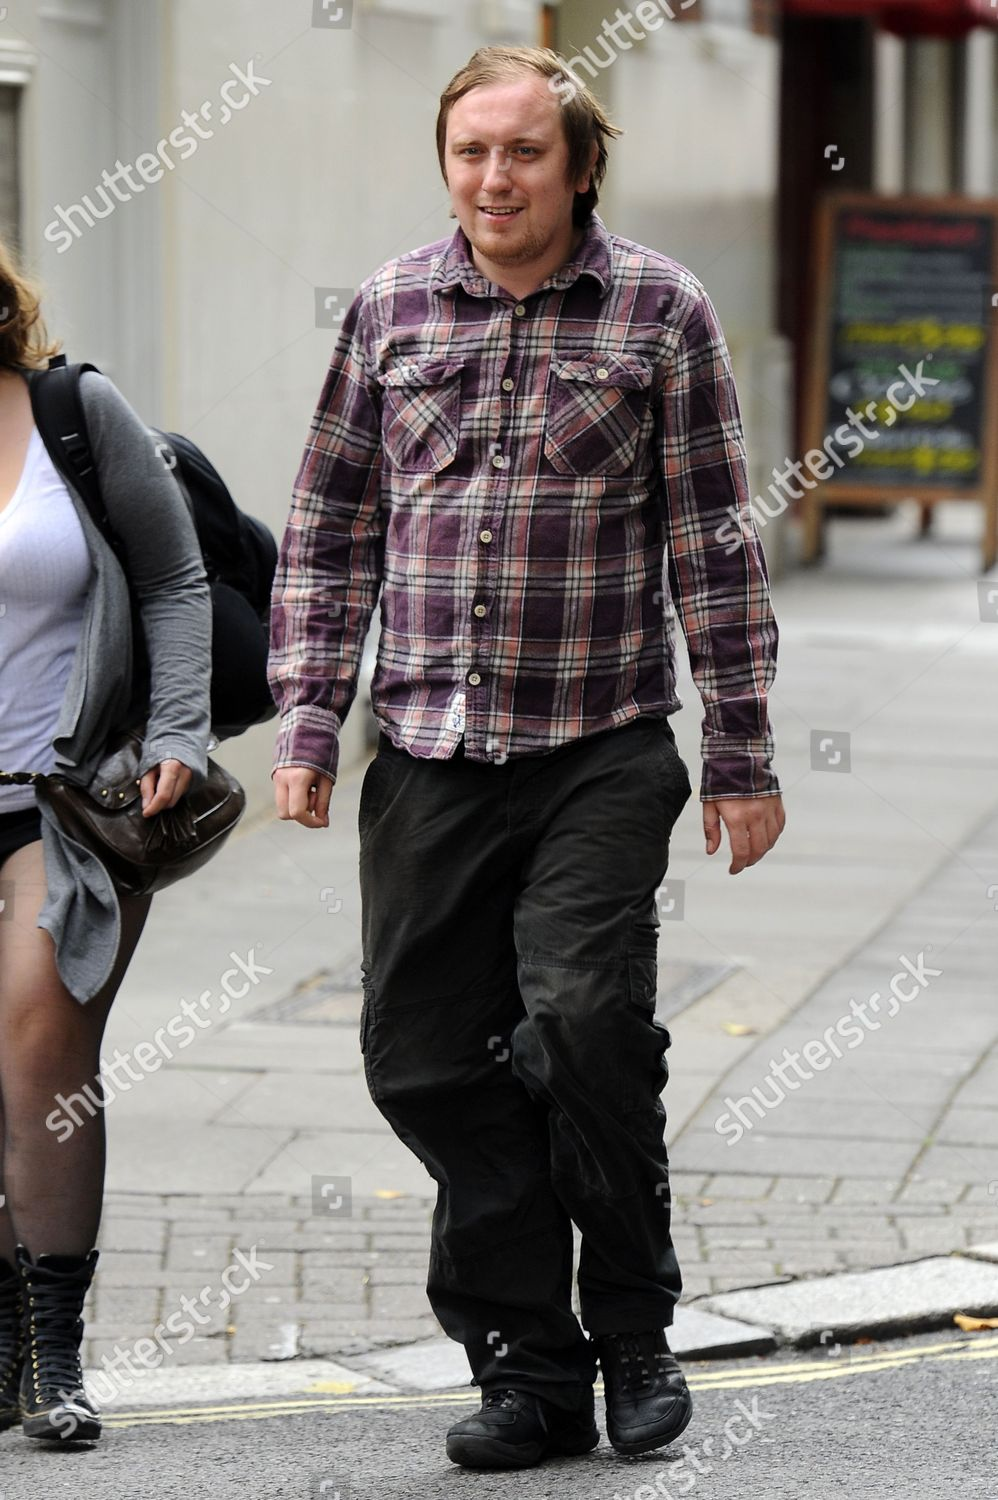 Stockfoto von Jonathan May-Bowles aka Jonnie Marbles arriving at Westminster Magistrates court for sentencing, London, Britain - 02 Aug 2011